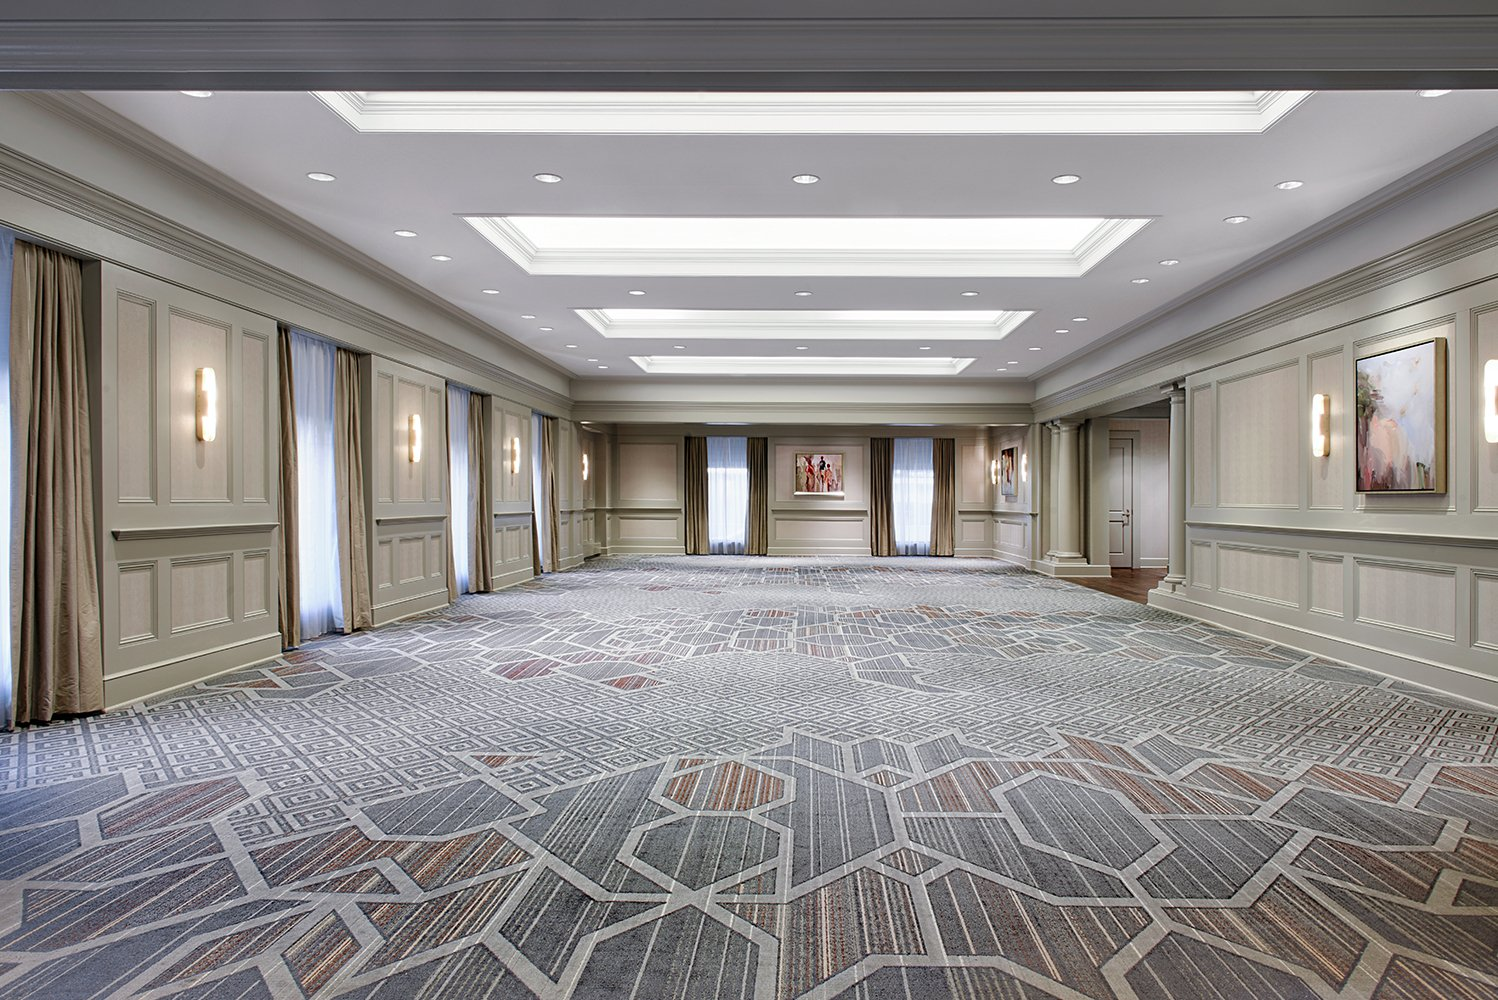 The meeting space and pre-function renovation areas on the second and third floors were also refreshed.